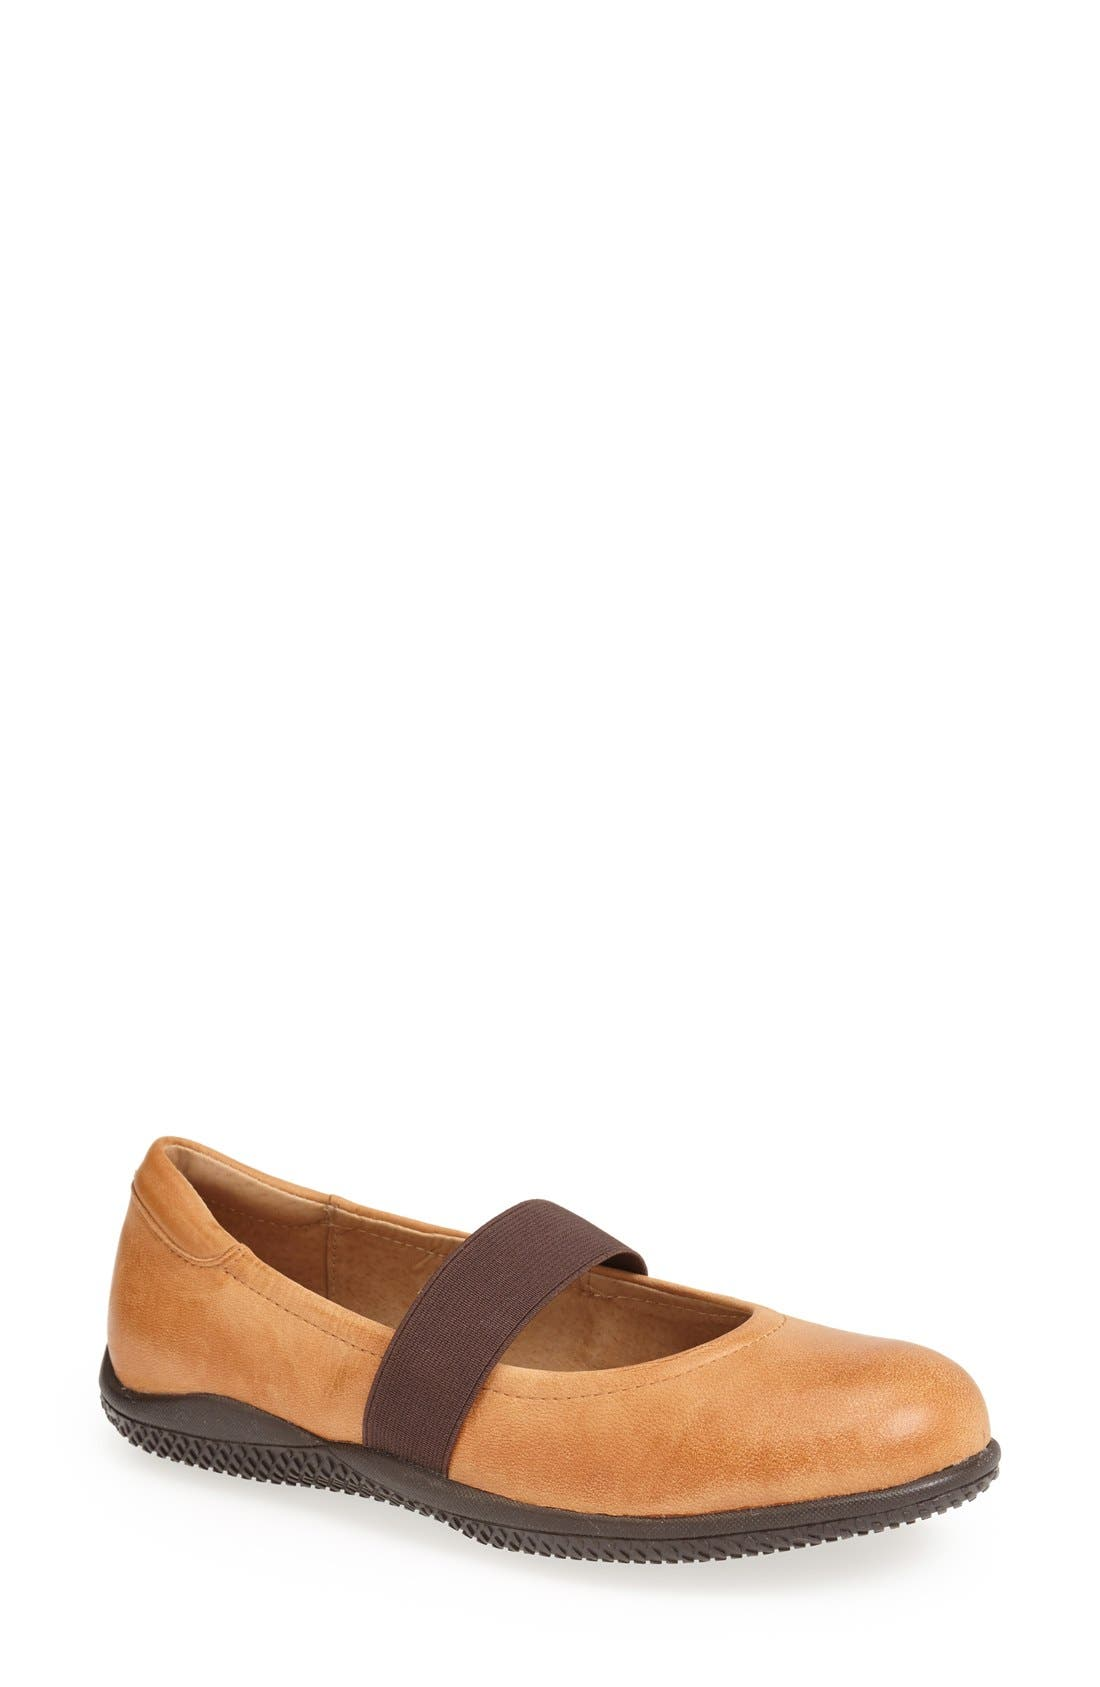 Alternate Image 1 Selected - SoftWalk® 'High Point' Mary Jane Flat (Women)